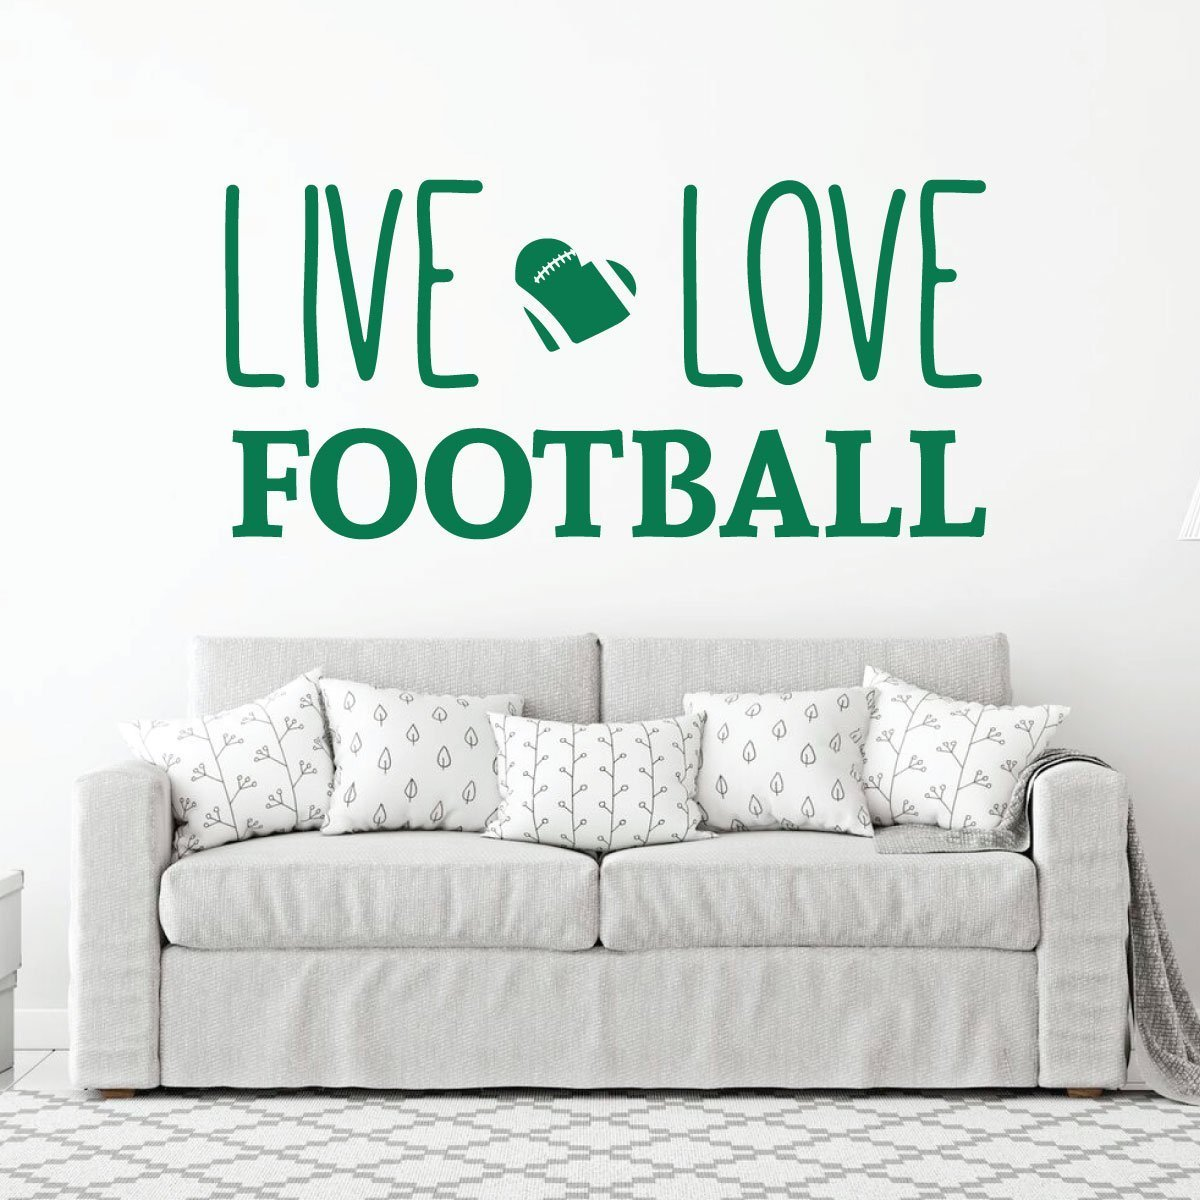 Live Love Football Wall Decal - Vinyl Art Sticker for Bedroom, Home Decor, Playroom or Game Room Decoration by CustomVinylDecor (Image #7)